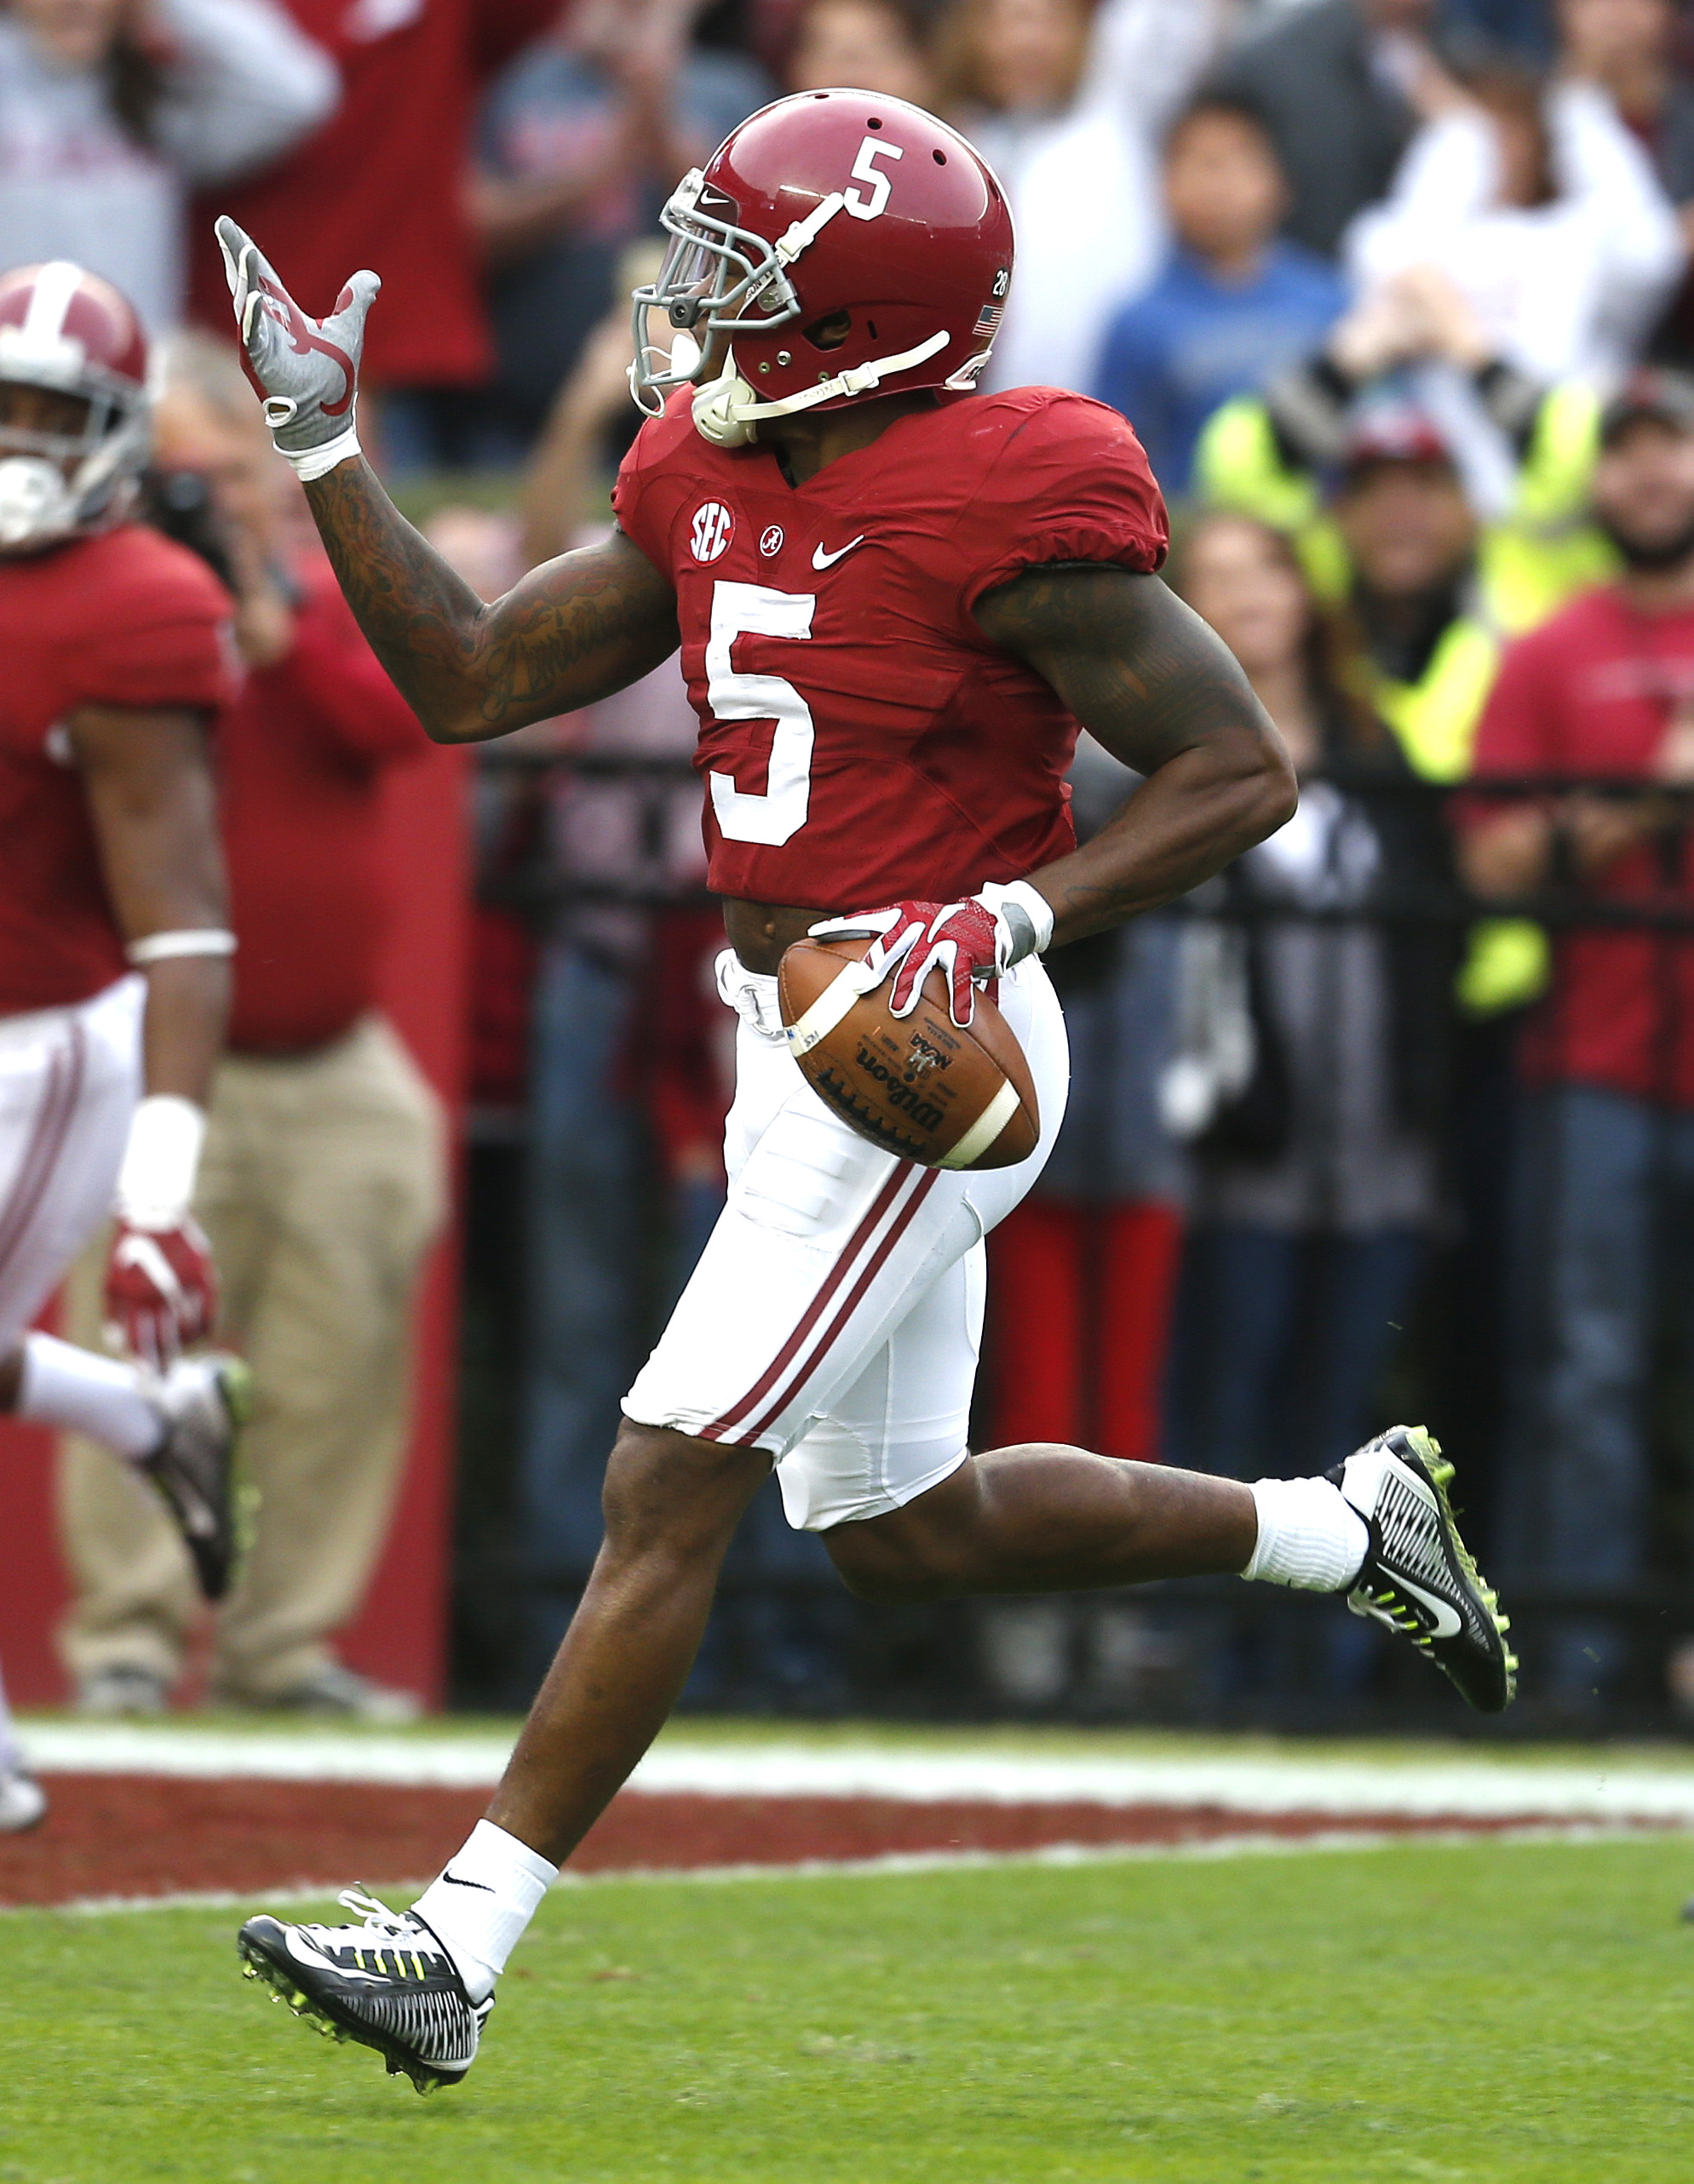 Alabama defensive back Cyrus Jones (5) returns a punt for a touchdown during the first half of an NCAA football game against Charleston Southern, Saturday, Nov. 21, 2015, in Tuscaloosa, Ala. (AP Photo/Butch Dill)